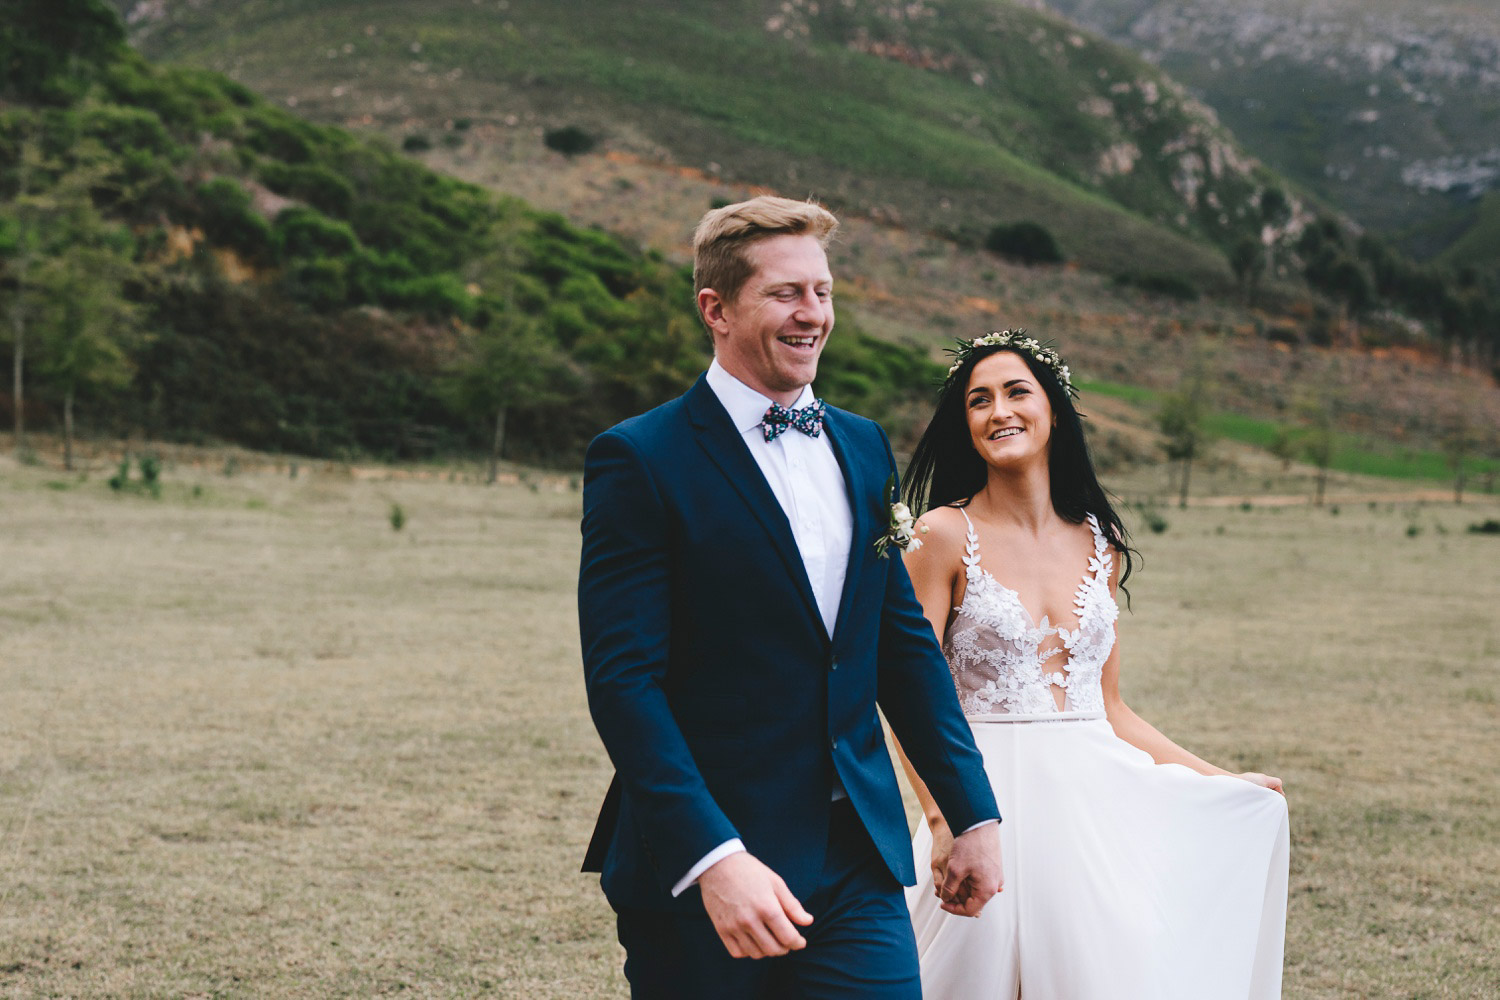 western-cape-photoghers-gen-scott-greyton-wedding-photography-charlie-ray106.jpg